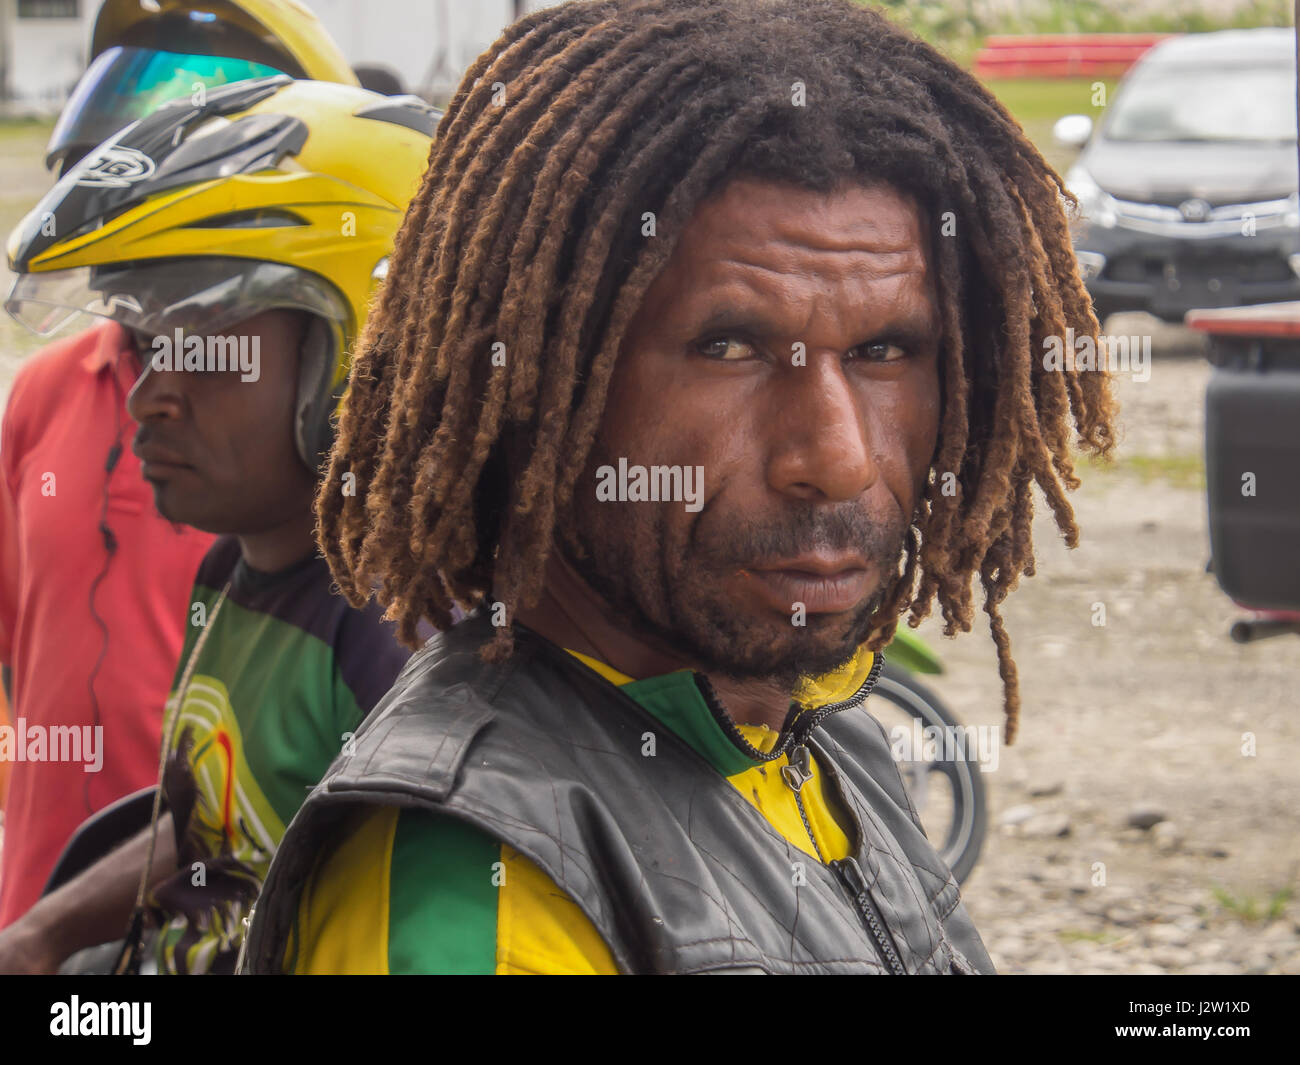 Dekai, Indonesia - January 12, 2015: Portret of the Papuan with a dreadlock - Stock Image